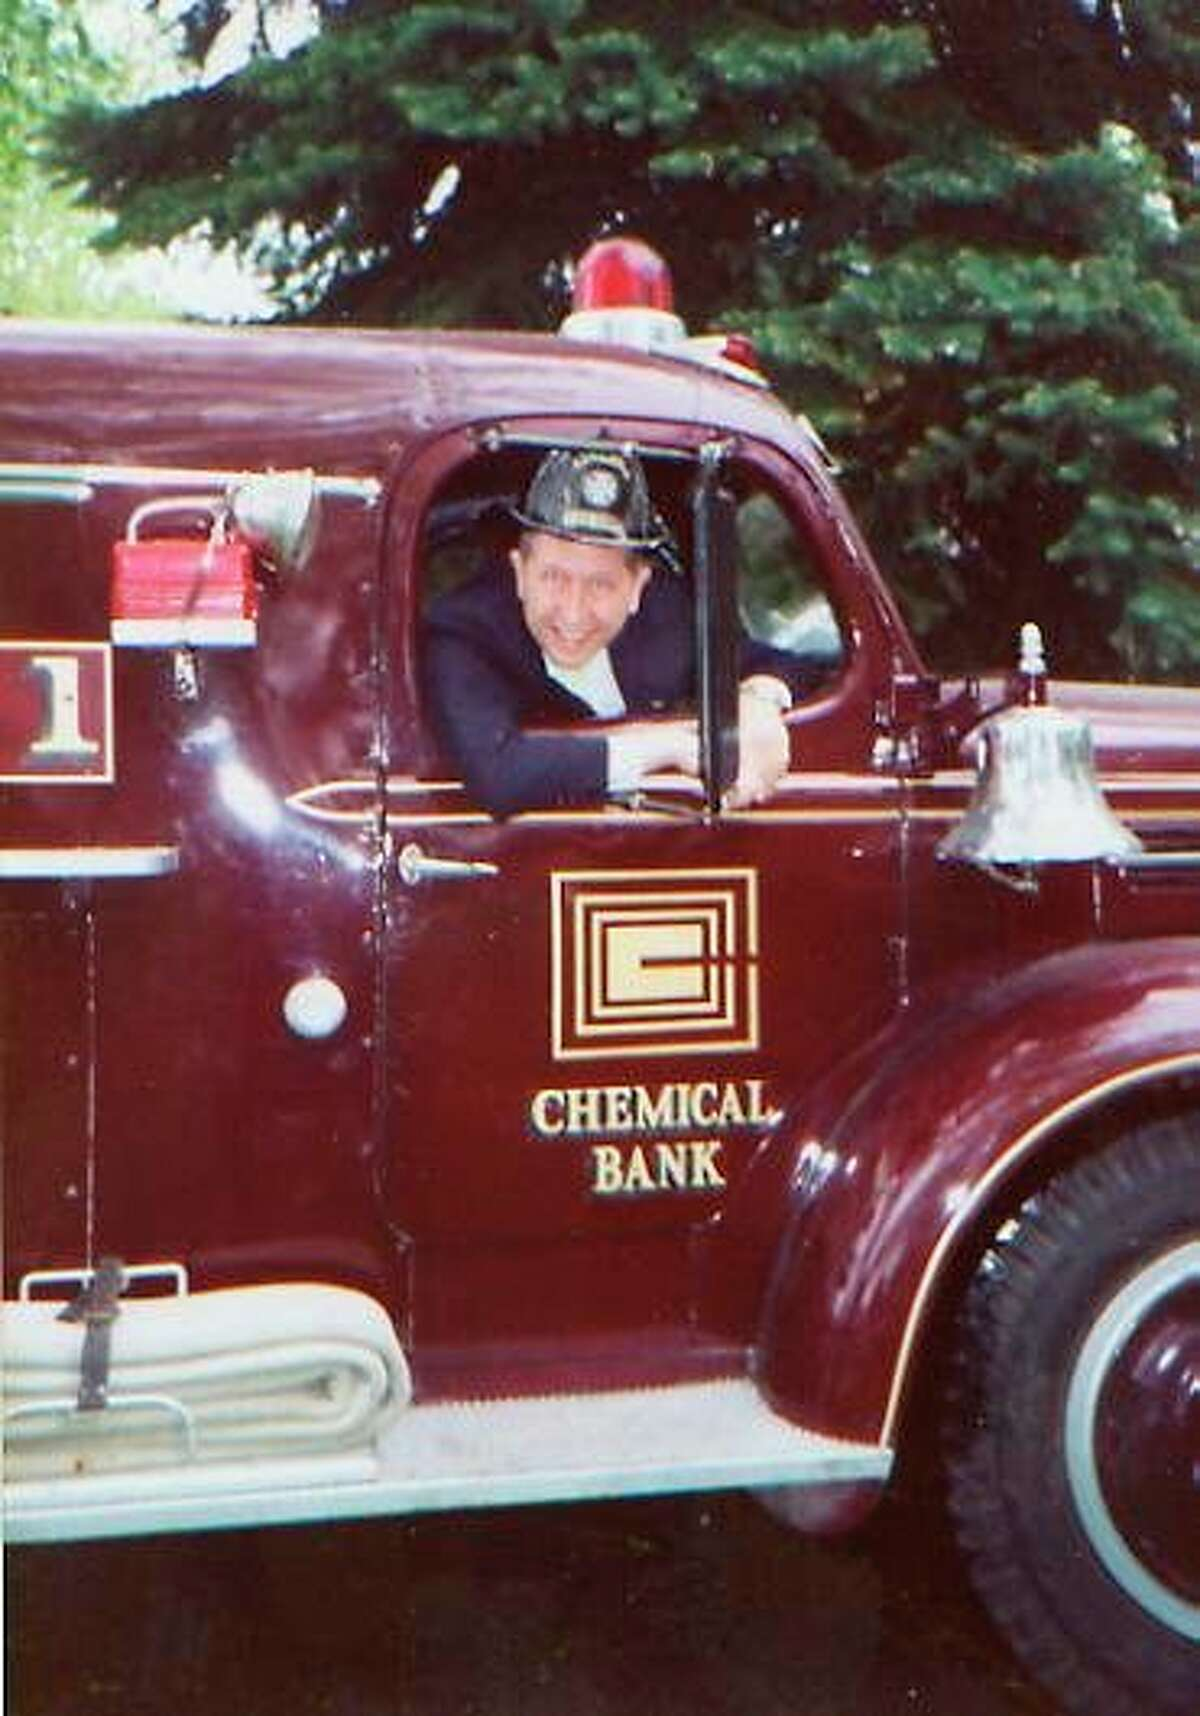 Walt retired from The Dow Chemical Co. in 1991 after 37 years. (Photo provided)